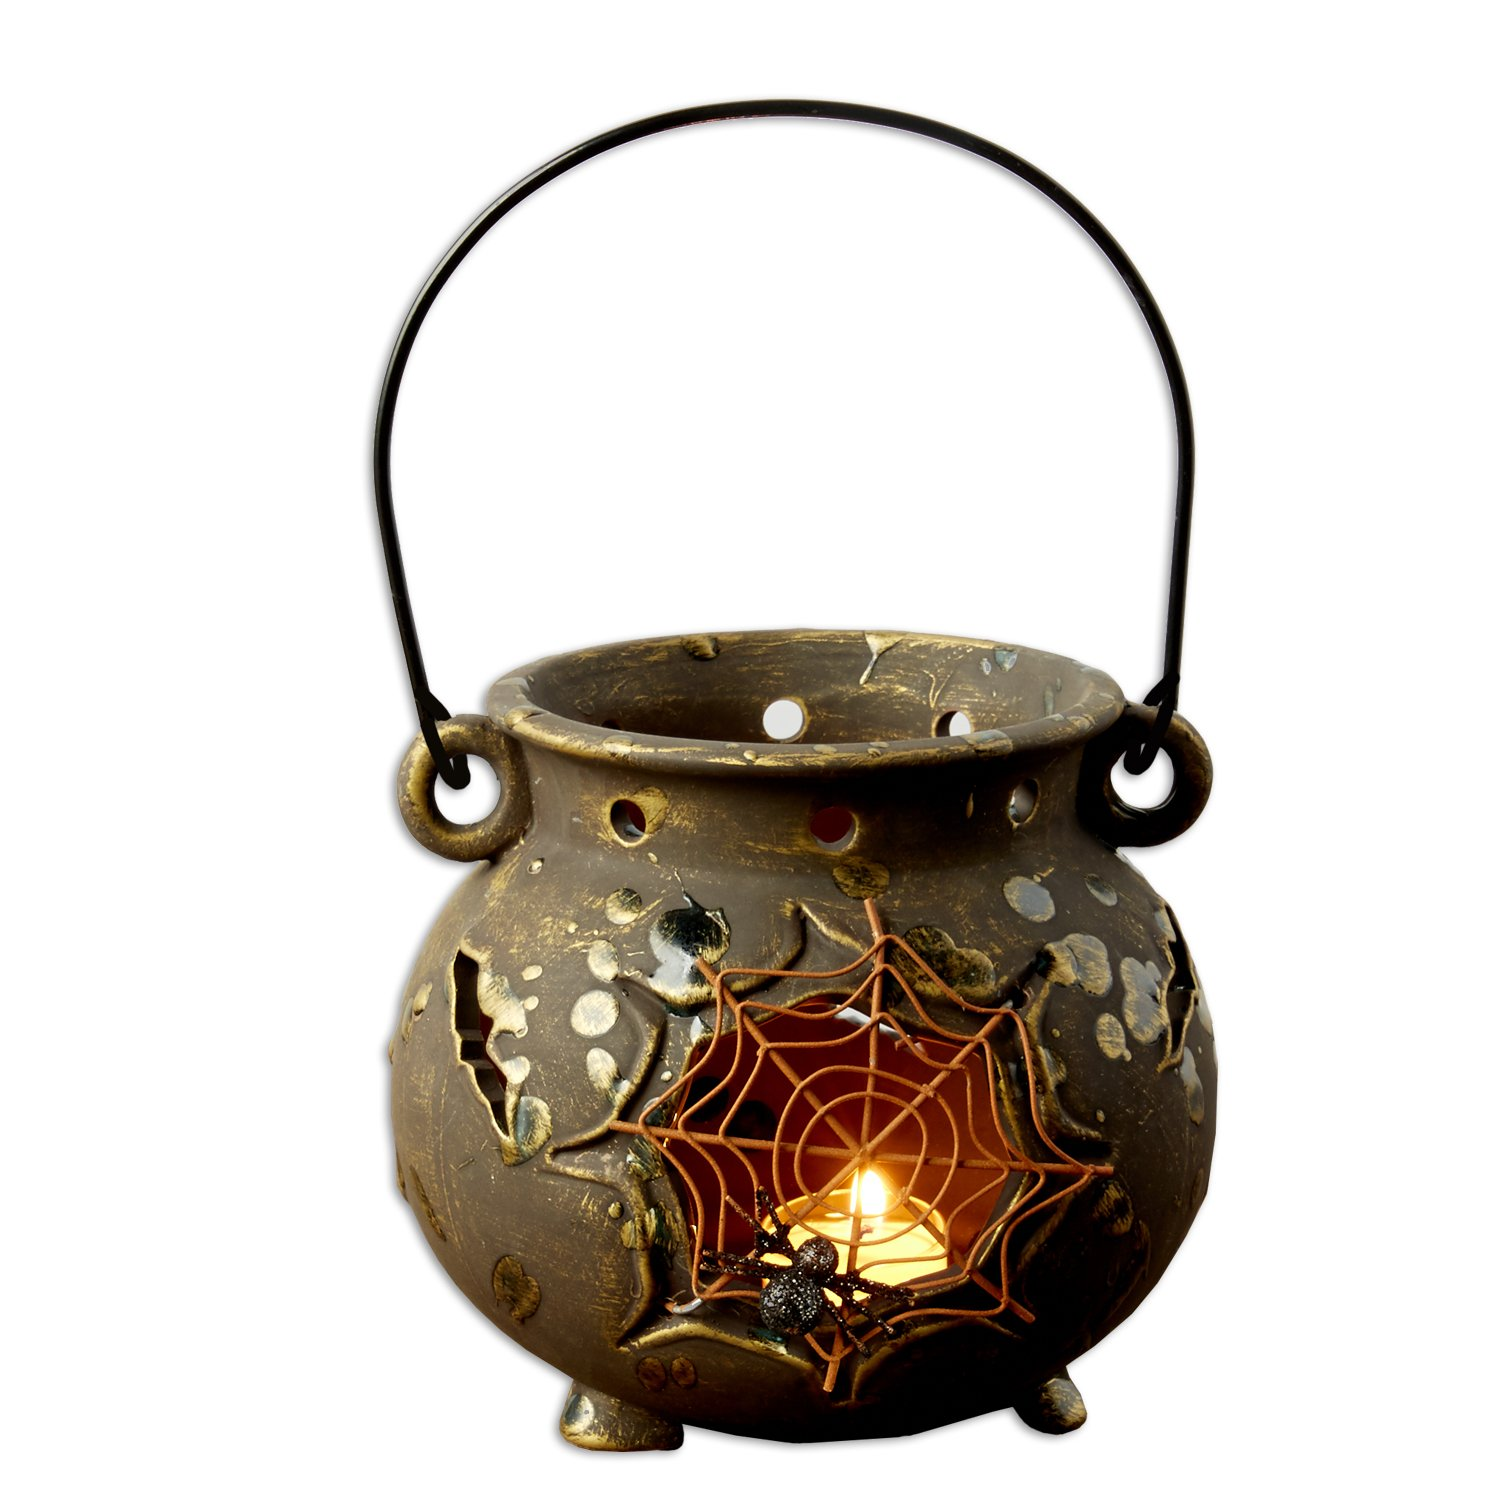 Halloween and Fall Spider Web Cauldron Indoor or Outdoor Decorative Tealight Ceramic Lantern Party Decoration